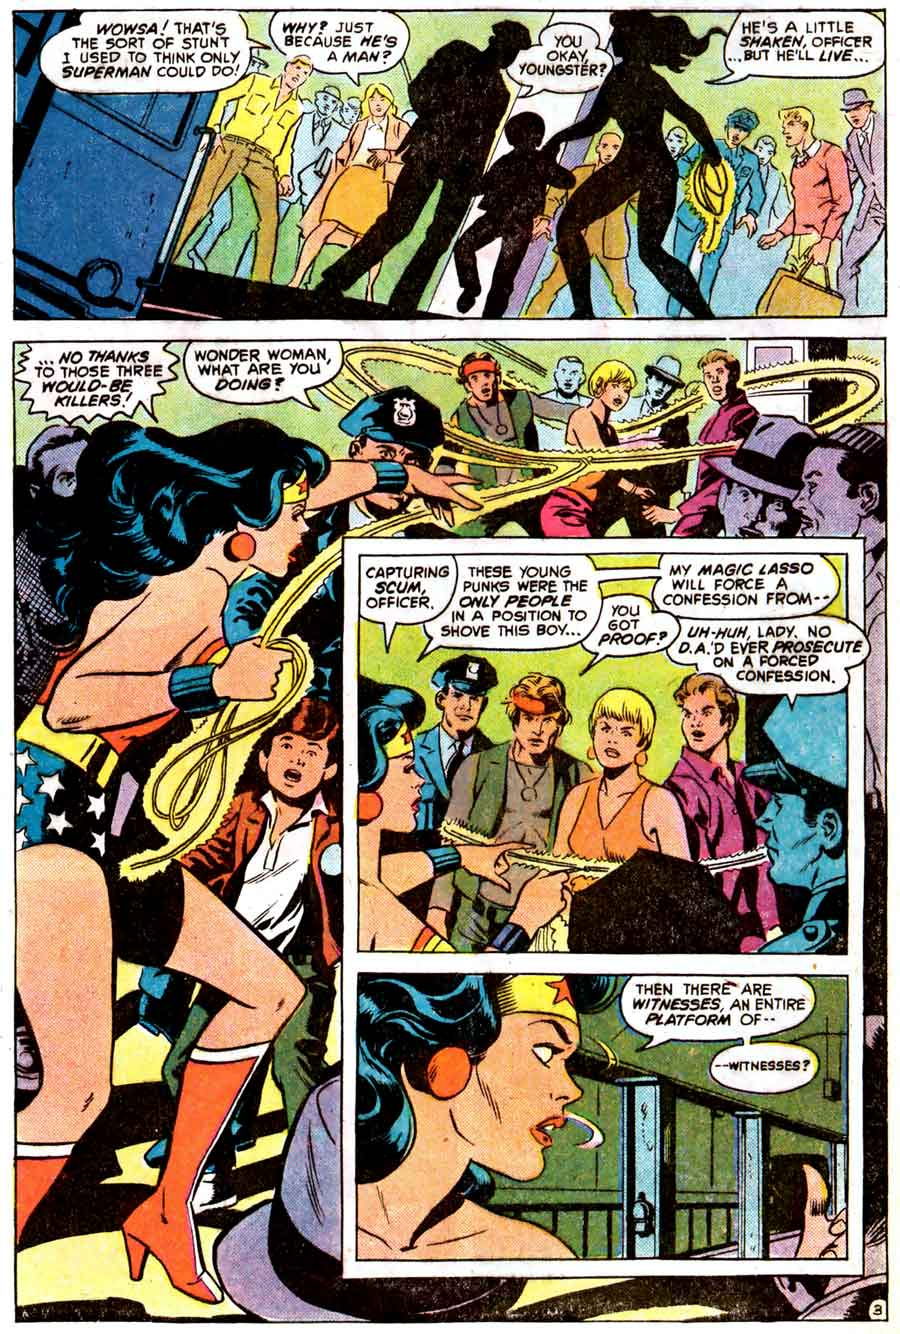 Wonder Woman v1 #269 dc 1970s bronze age comic book page art by Wally Wood